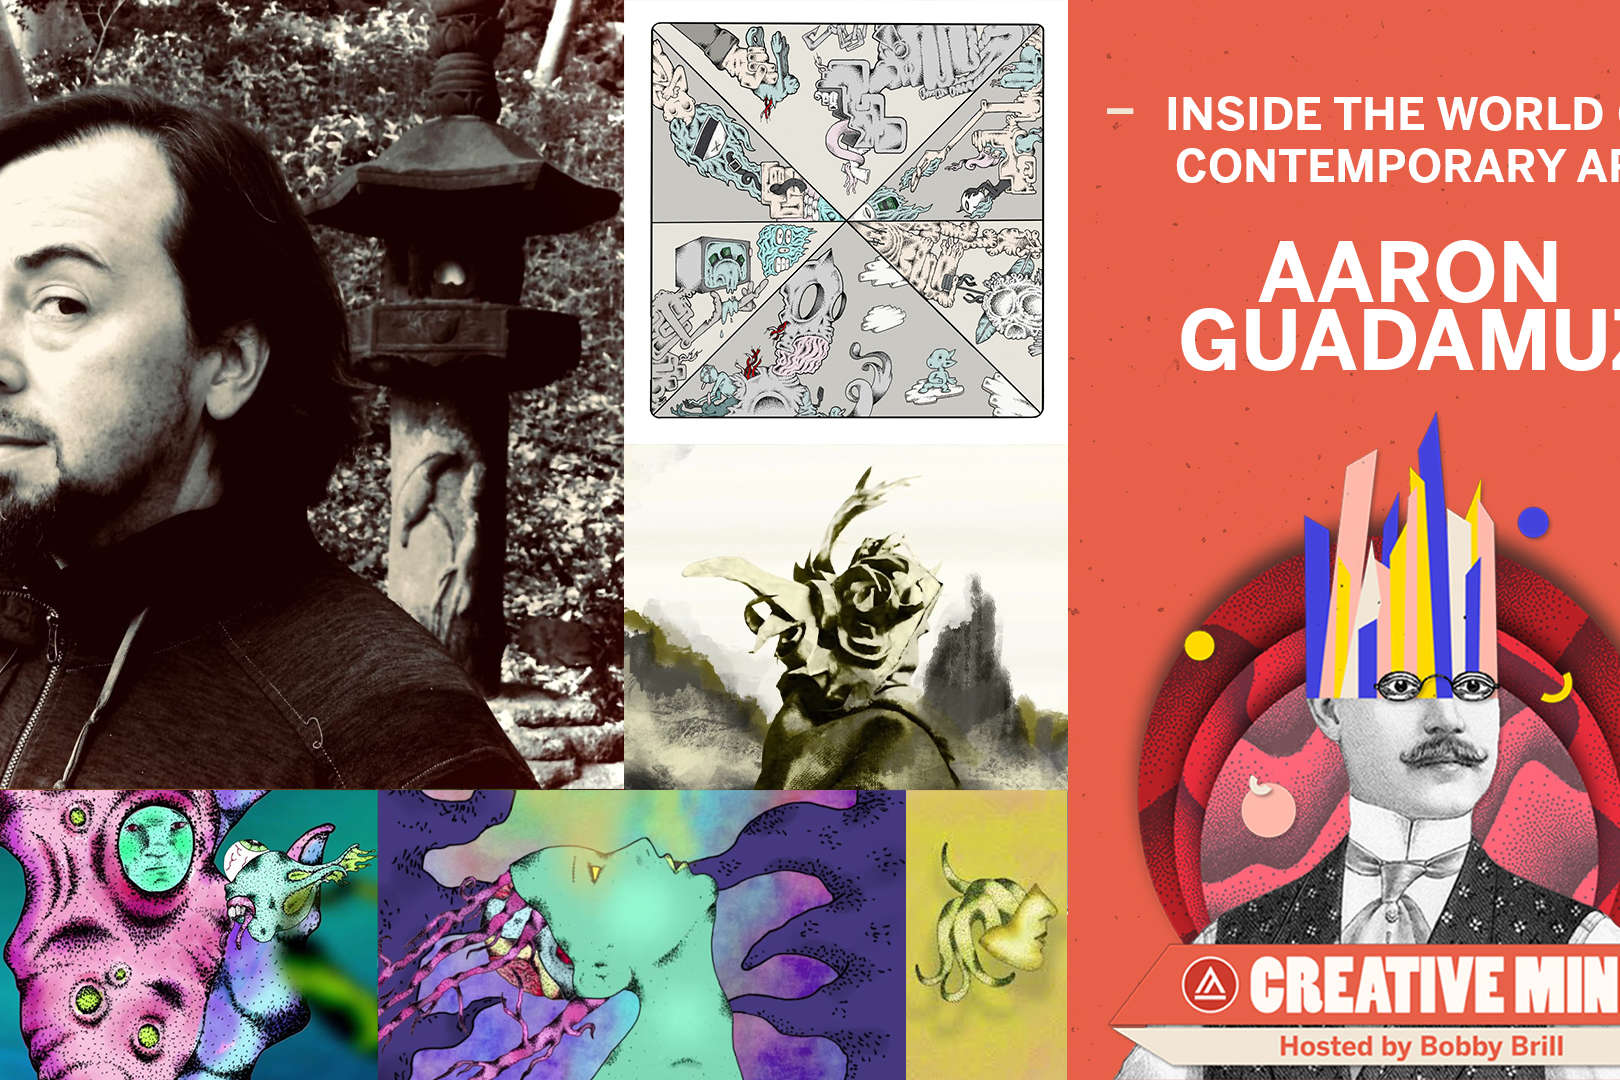 Creative Mind Podcast: Aaron Guadamuz